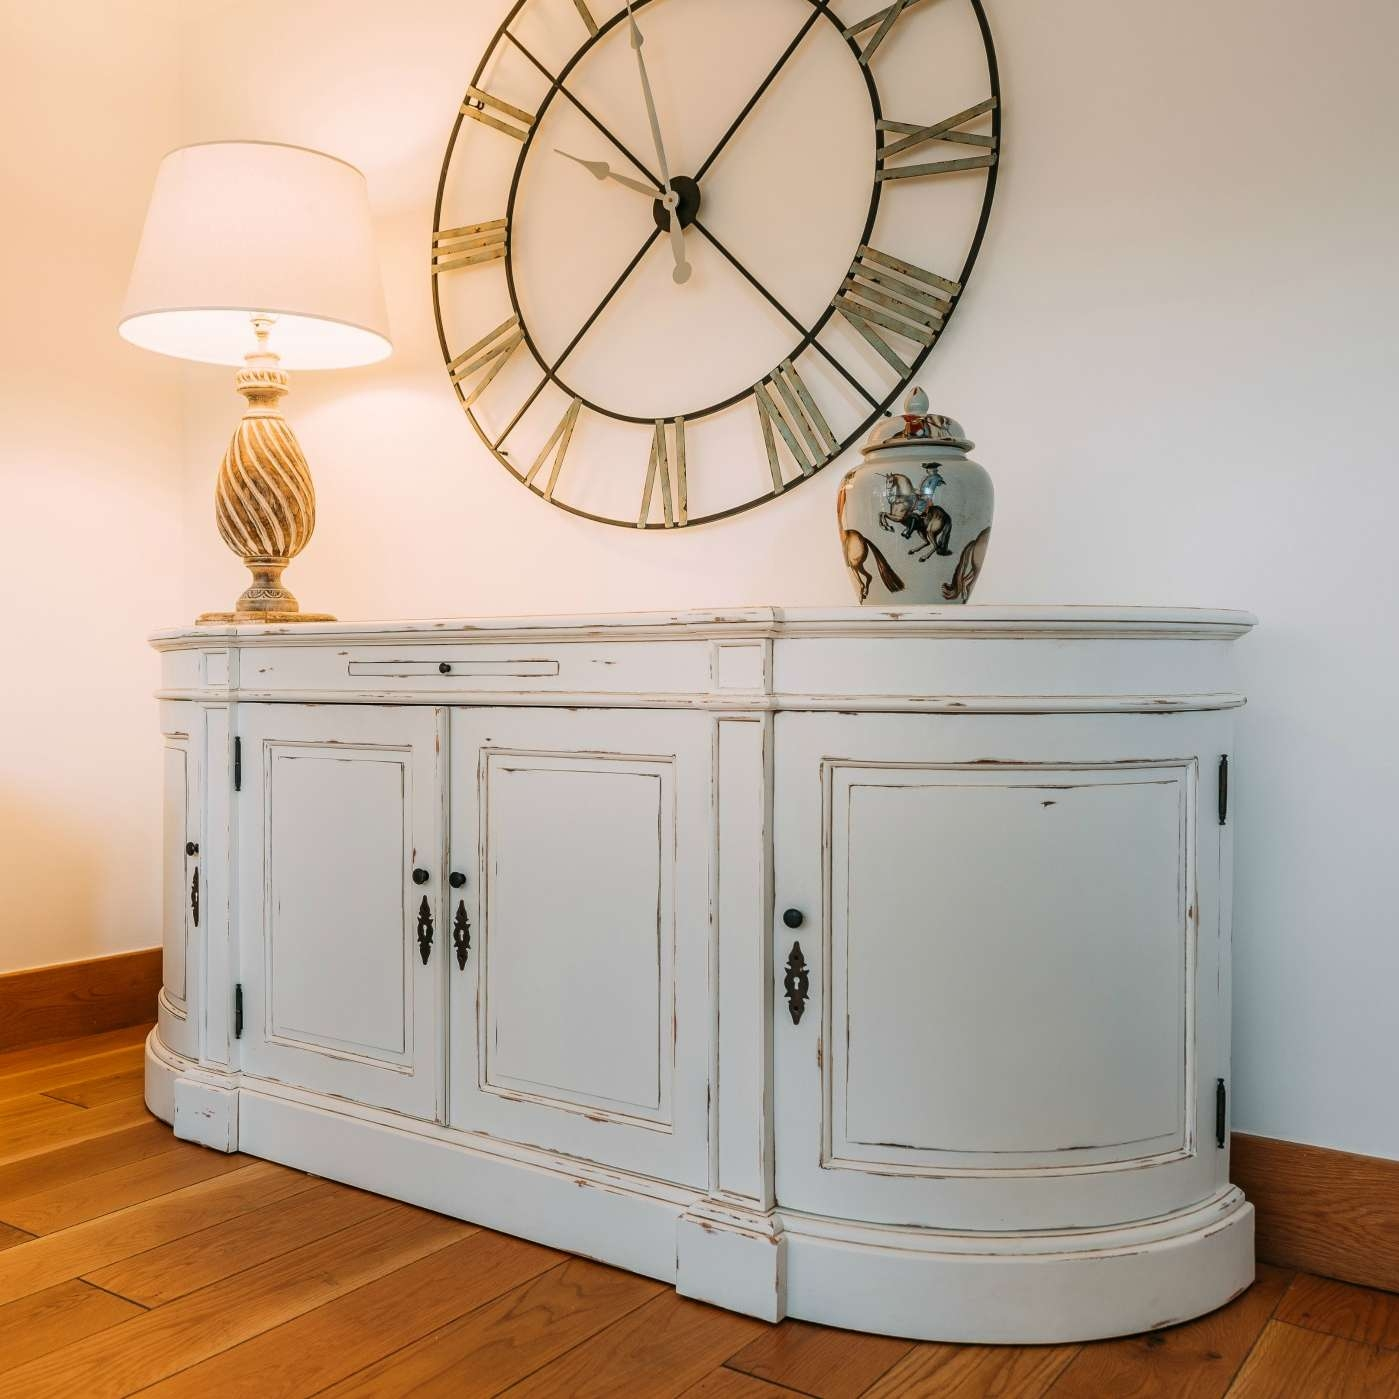 Aged French Distressed White Large Sideboard Furniture – La Maison Throughout French Sideboards (View 3 of 20)